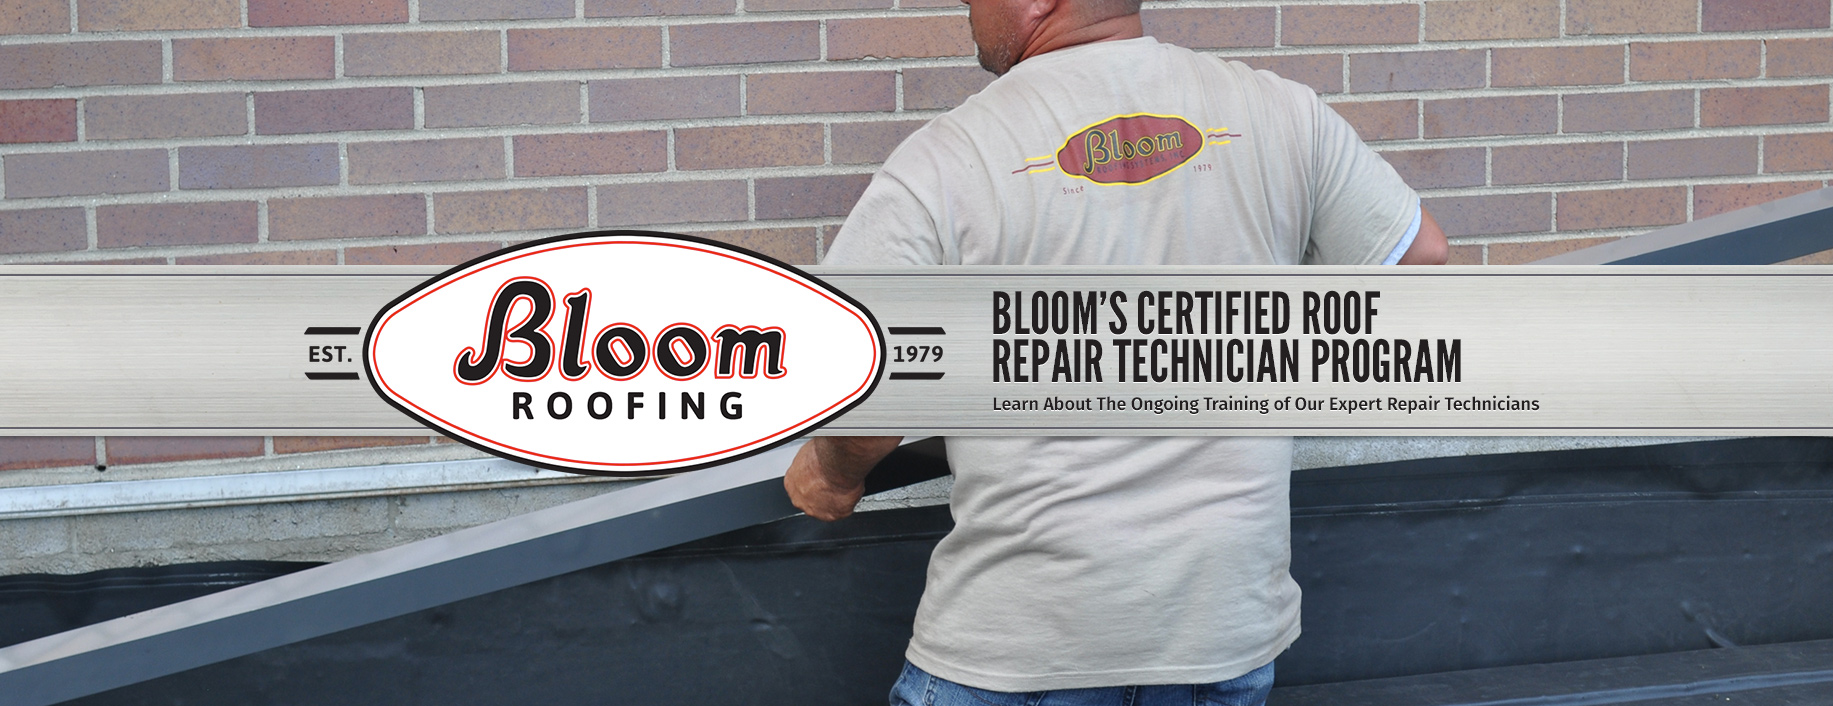 Bloom's Certified Roof Repair Technician Program